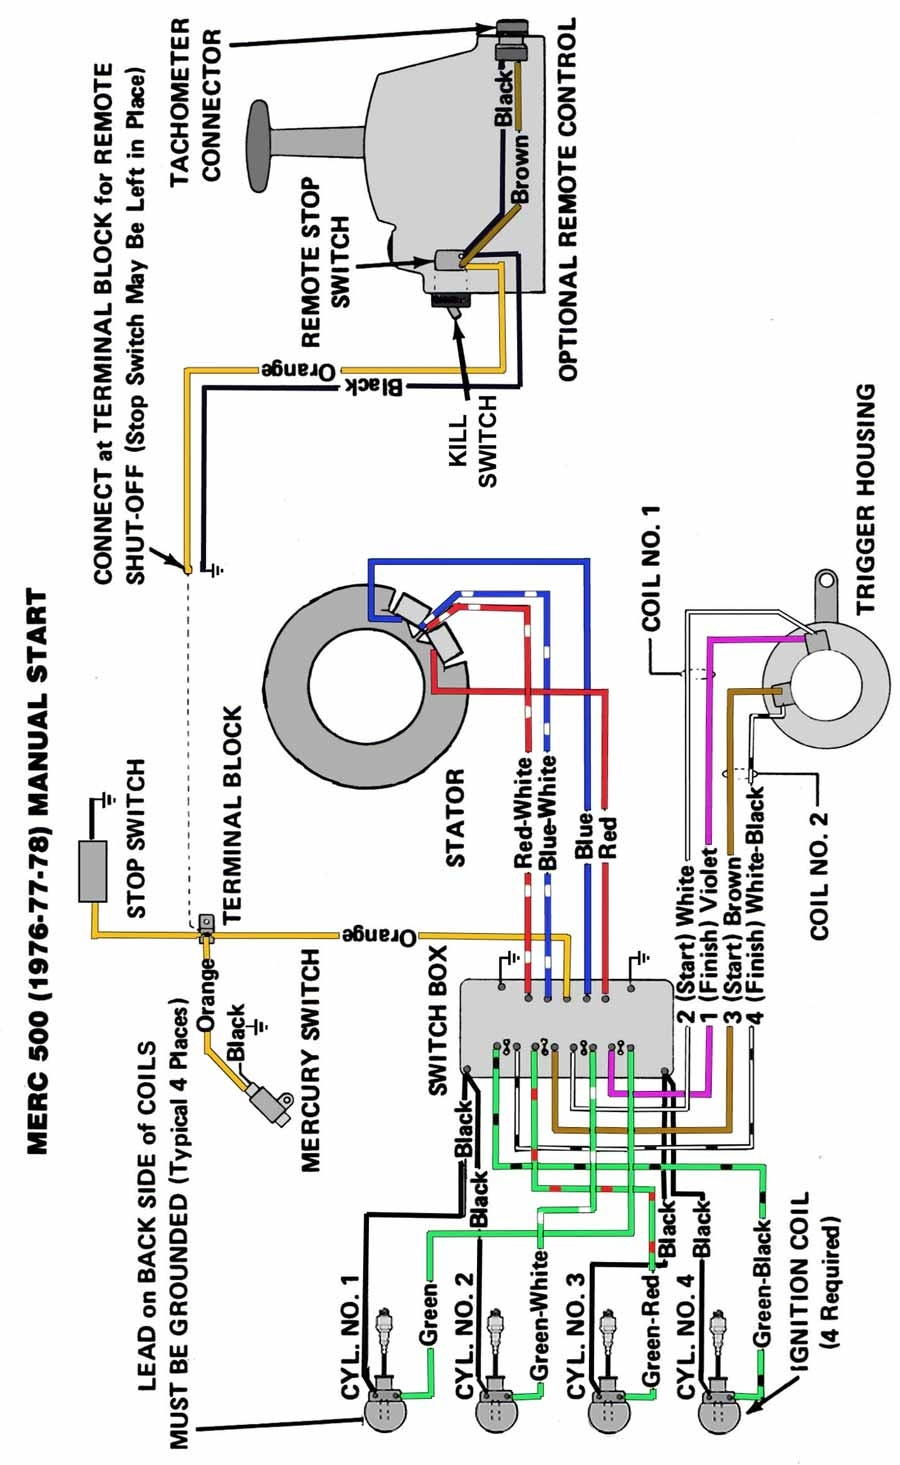 mercury outboard wiring diagrams mastertech marin intended for 76 evinrude wiring diagram?resize\\\\\\\\\\\\\\\=665%2C1082\\\\\\\\\\\\\\\&ssl\\\\\\\\\\\\\\\=1 mercury outboard ignition switch diagram color coded wiring Boat Ignition Switch Wiring Diagram at crackthecode.co